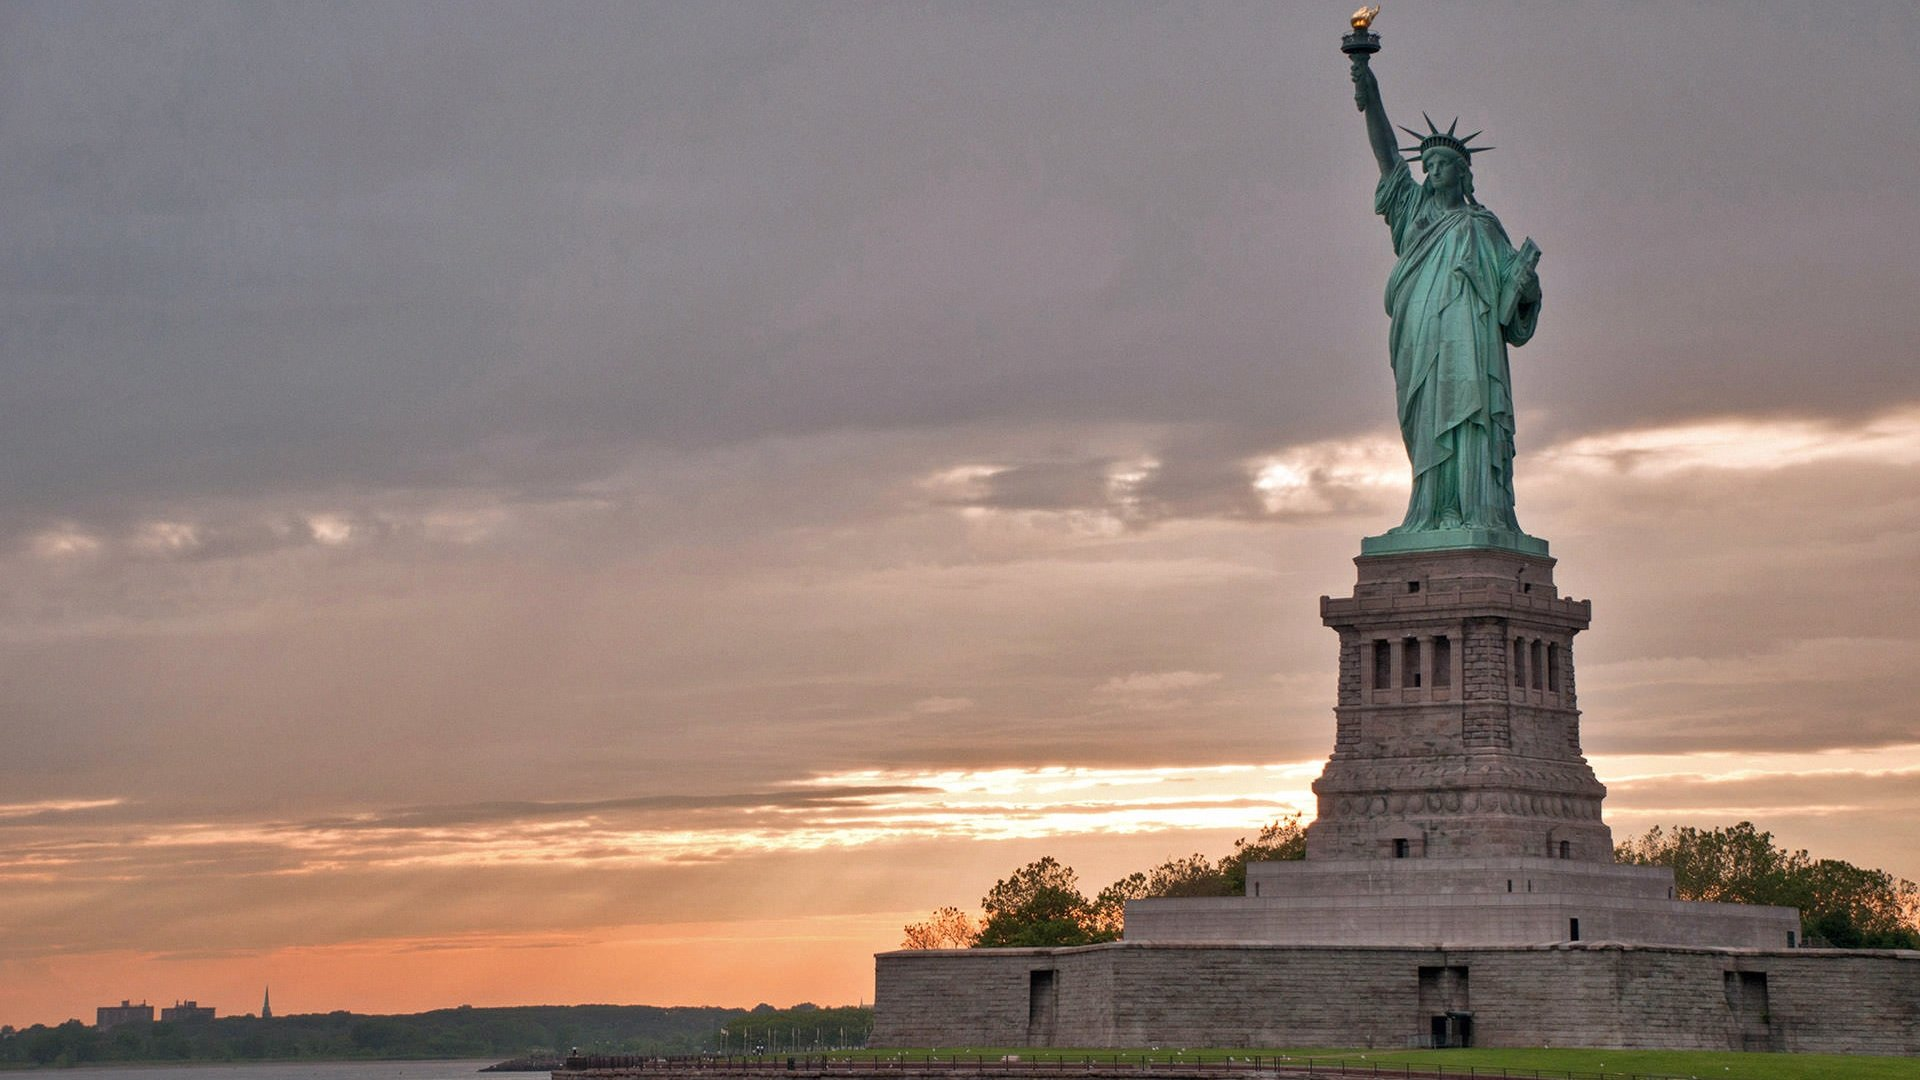 Statue Of Liberty National Park Foundation - Where is the statue of liberty located